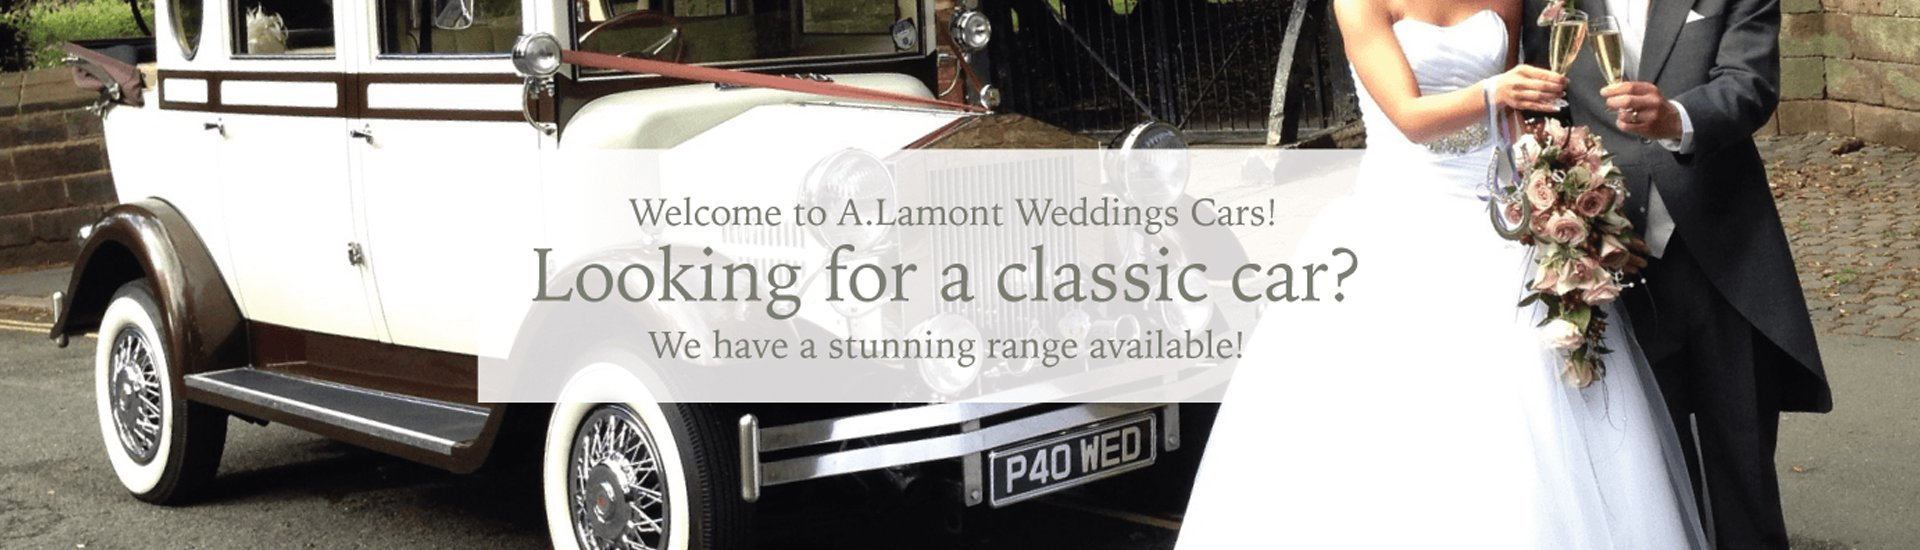 Classic cars for wedding